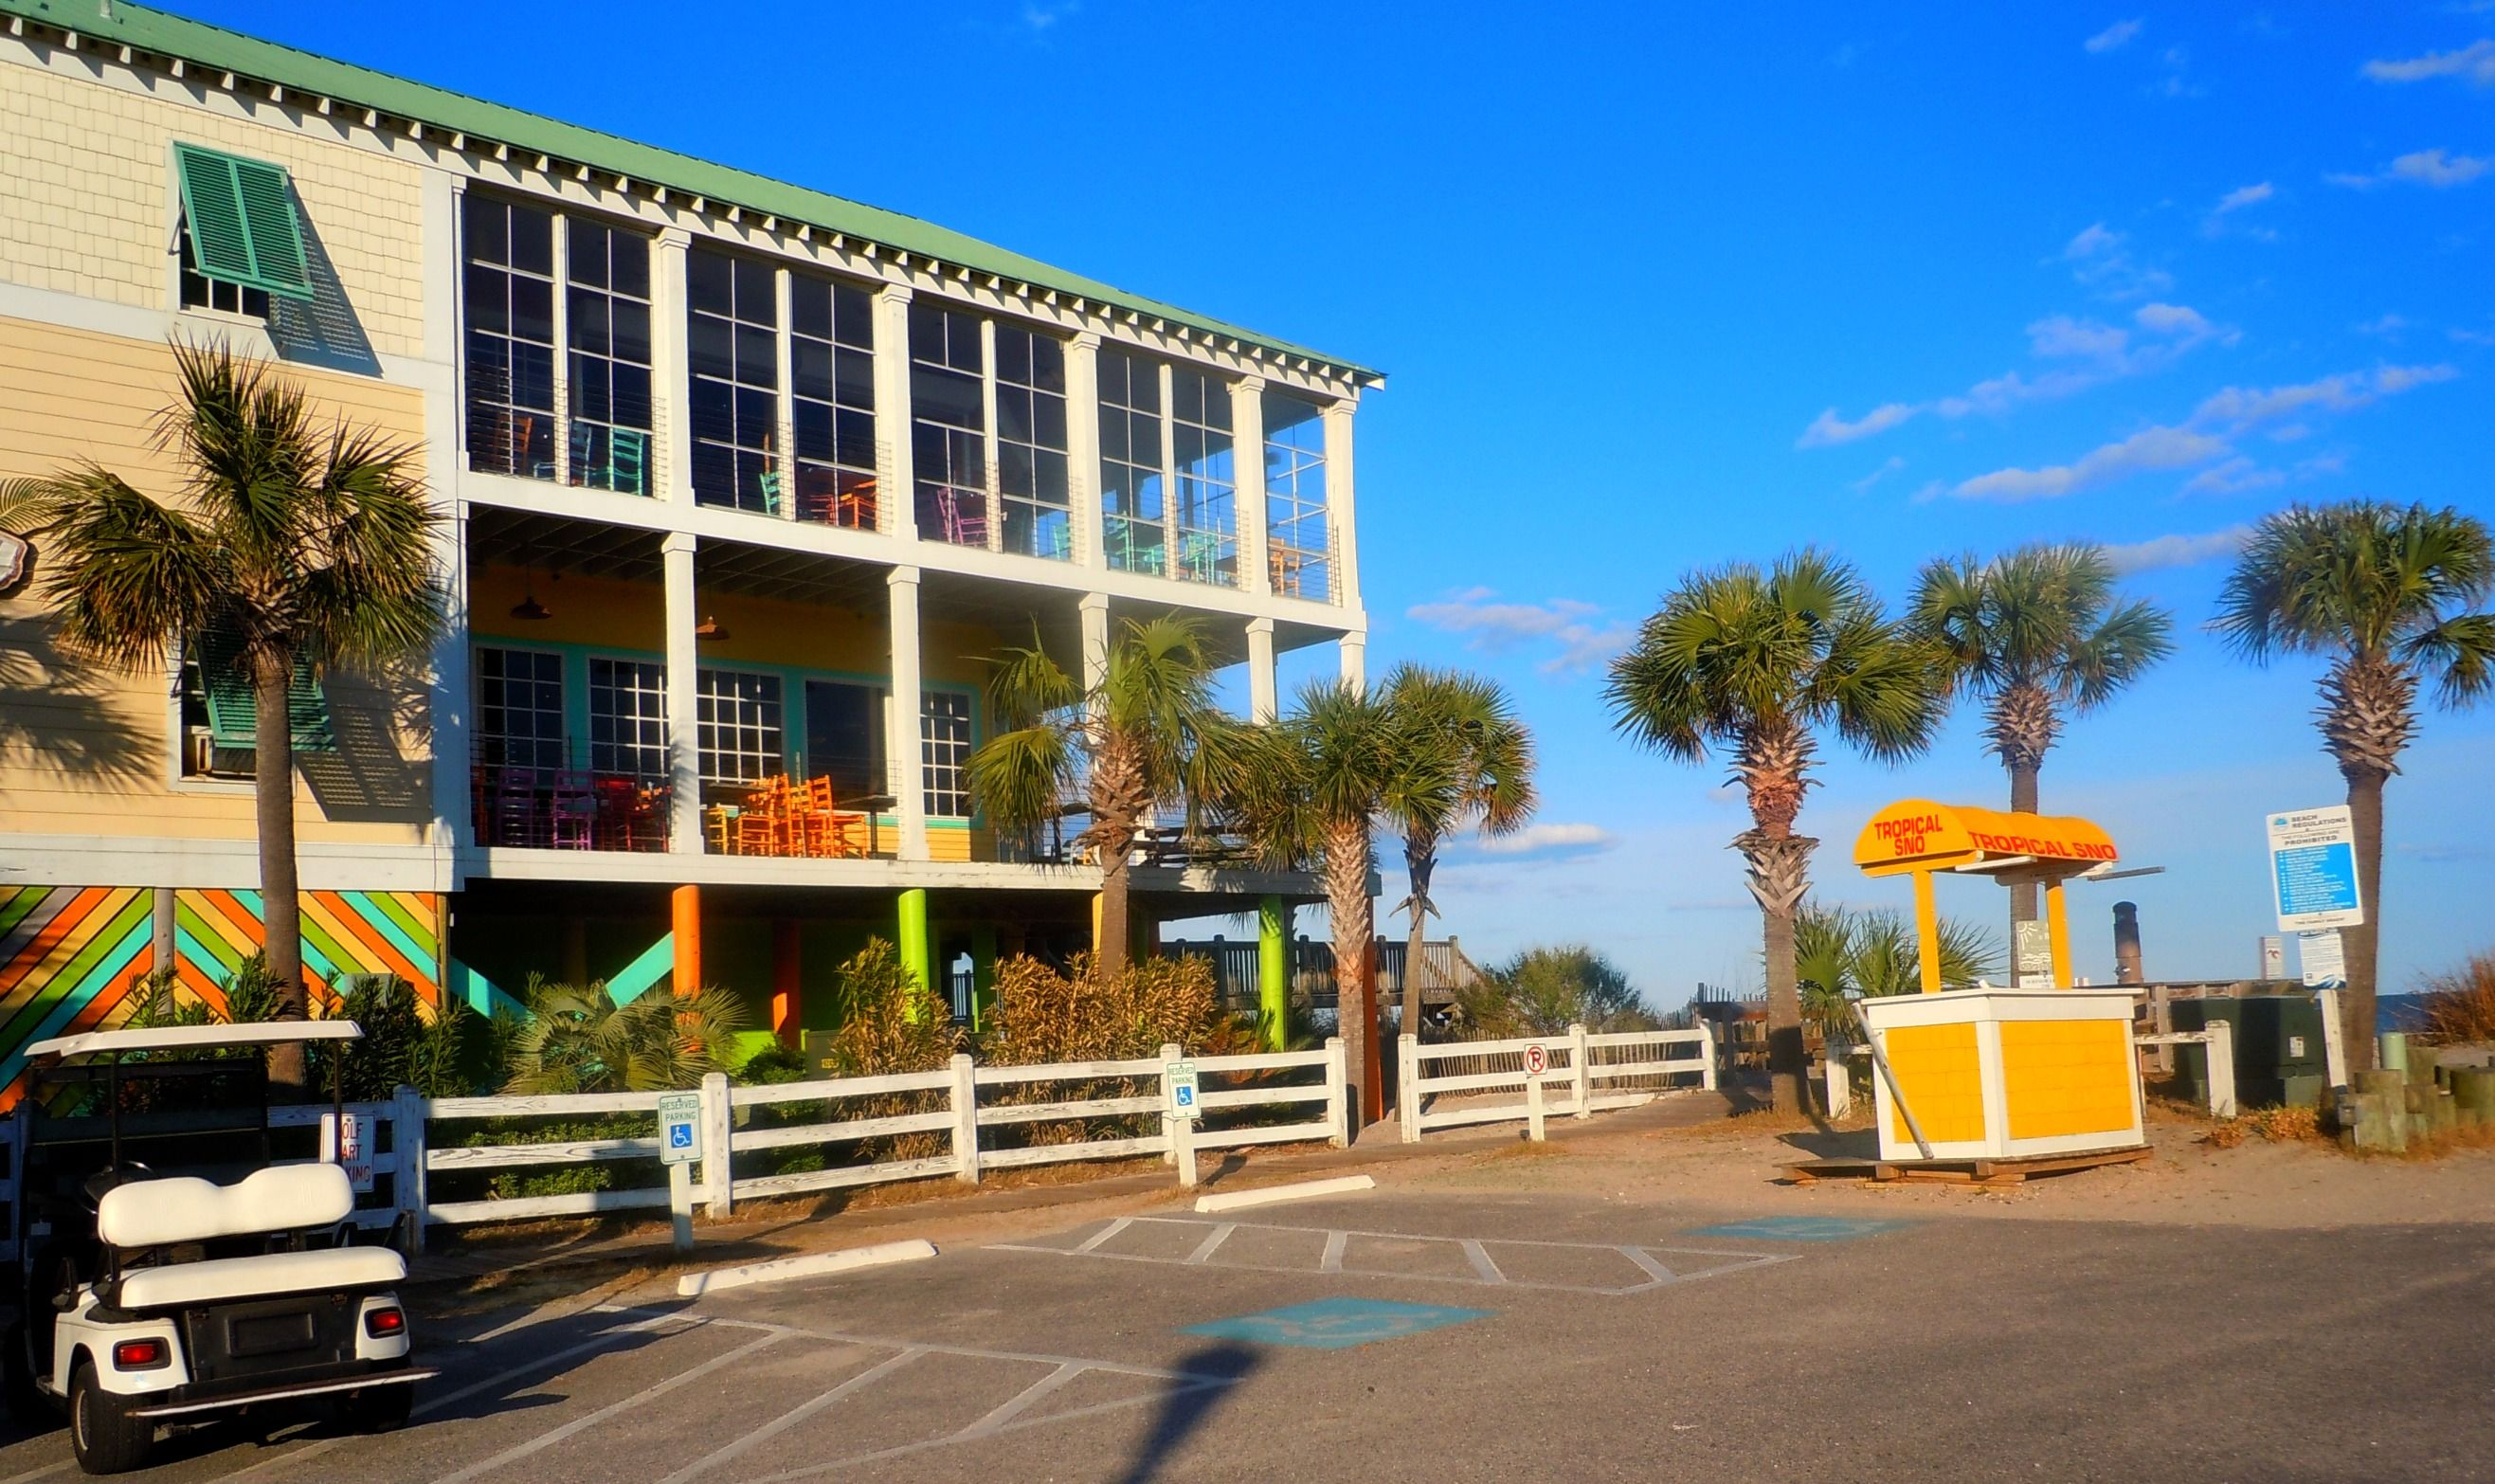 River City Cafe Surfside Beach Surfside Beach Surfside Myrtle Beach